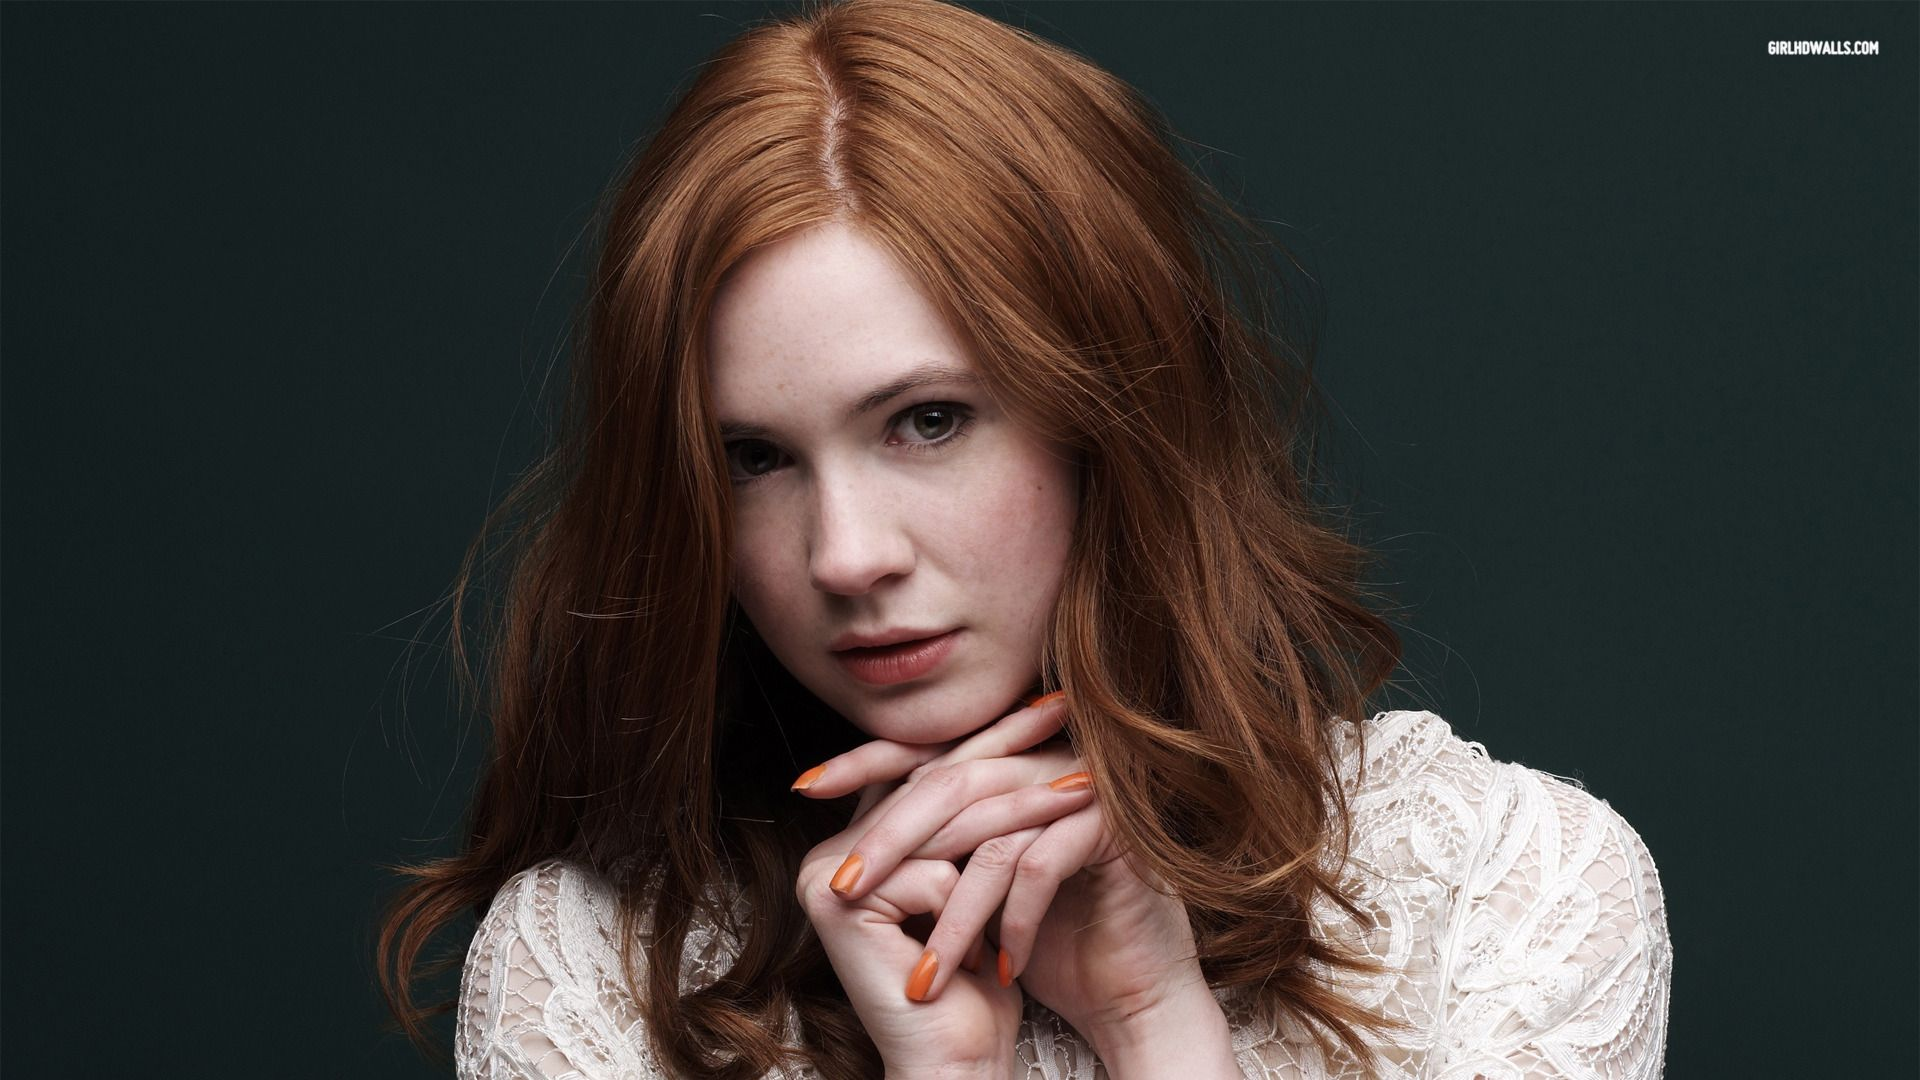 Amy Pond Sex Stories Cool shannon blaire character study. human. banshee. karen would be